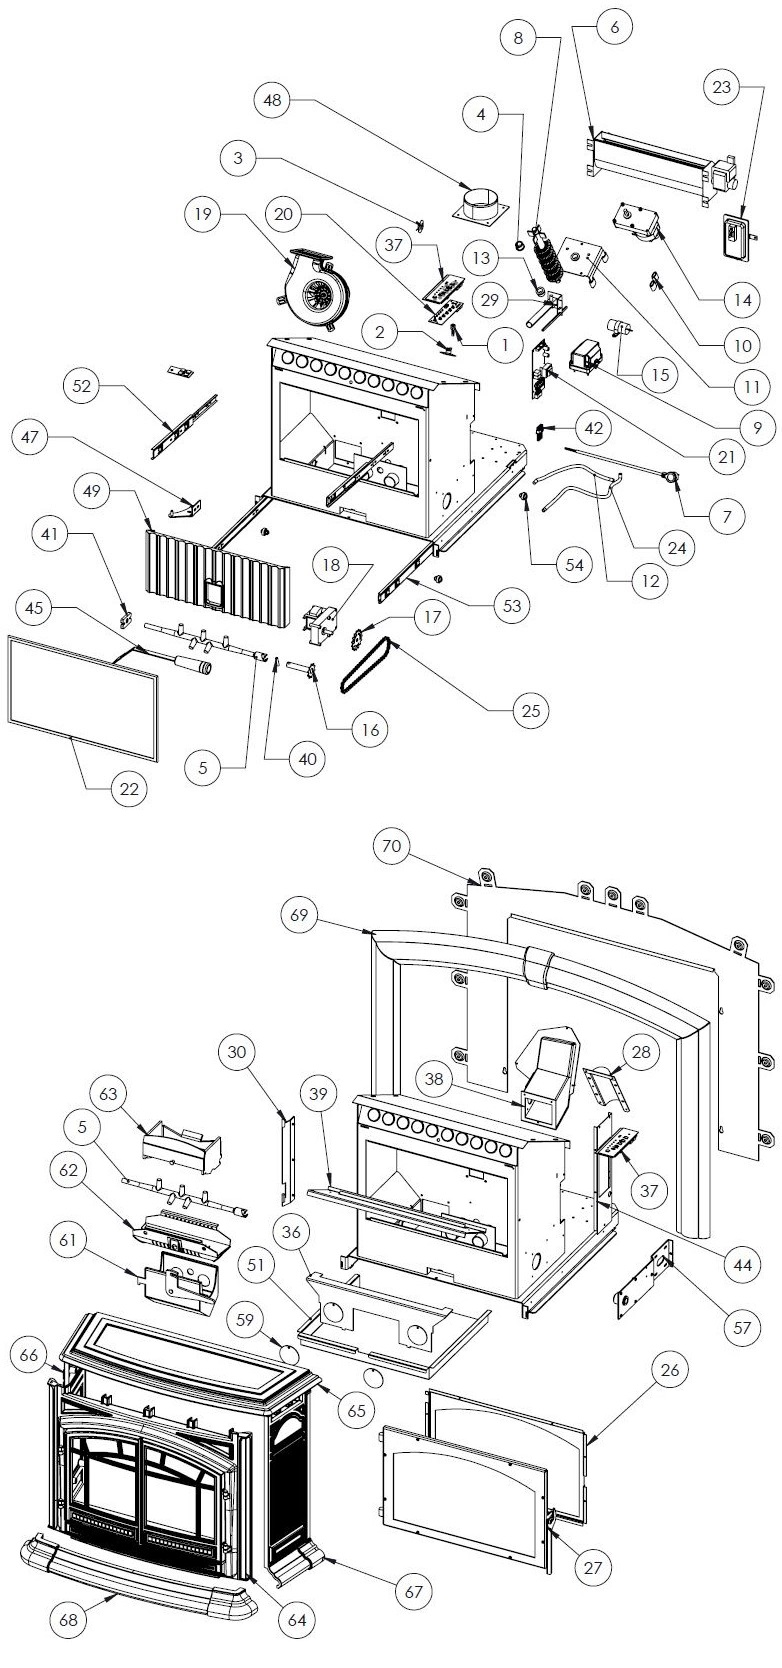 medium resolution of m55 fpi insert parts free shipping on orders over 49 rh stove parts unlimited com wiring diagram symbols basic electrical wiring diagrams